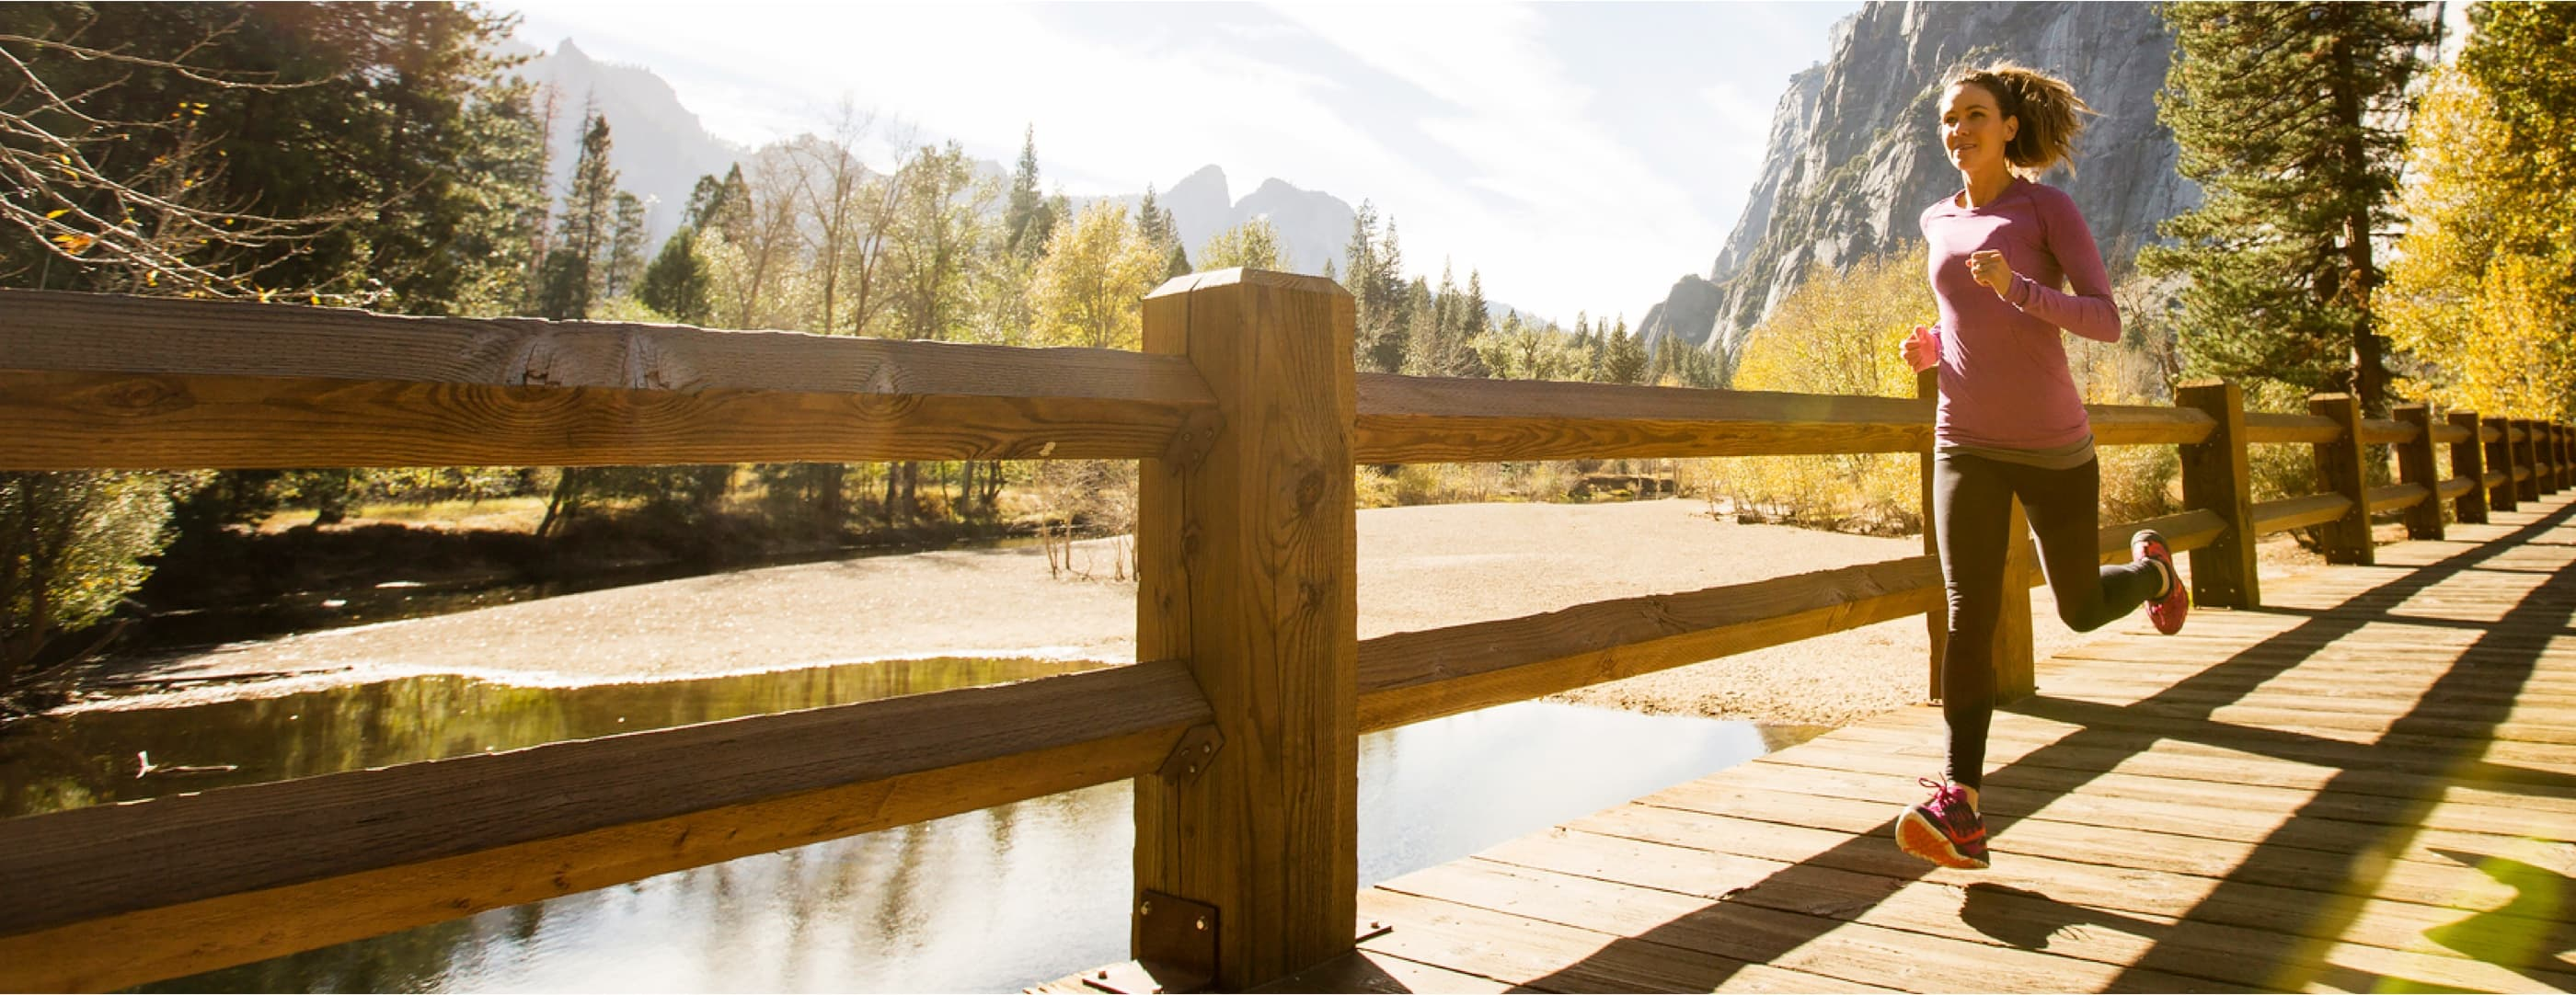 A runner with curly brown hair in a ponytail wearing a pink sweatshirt crosses a boardwalk bridge in front of towering rocky peaks.